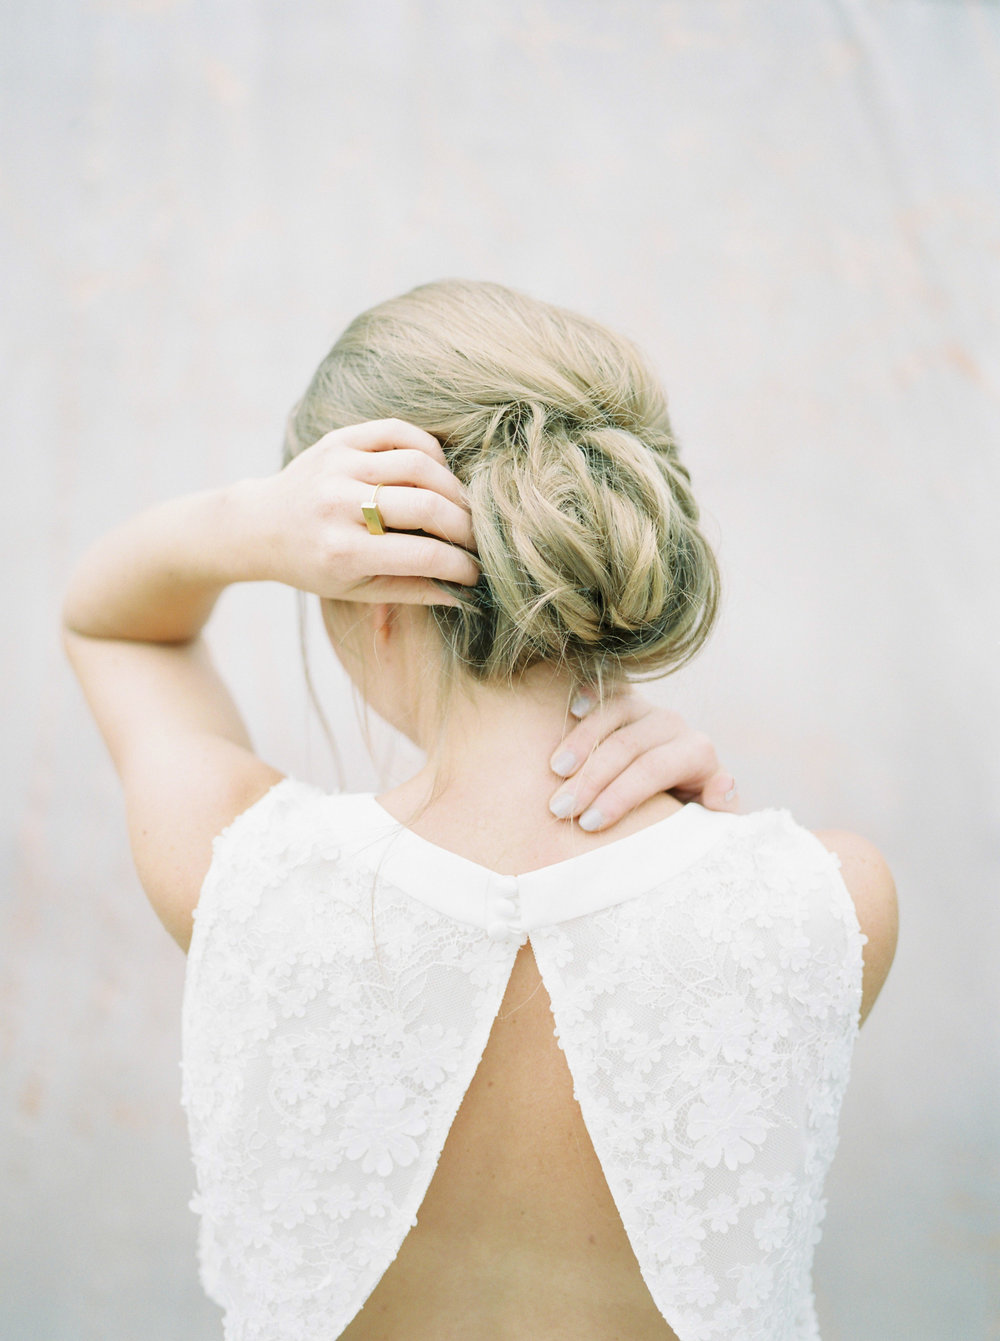 natural wedding hair and open back dress by imogen xiana wedding photography